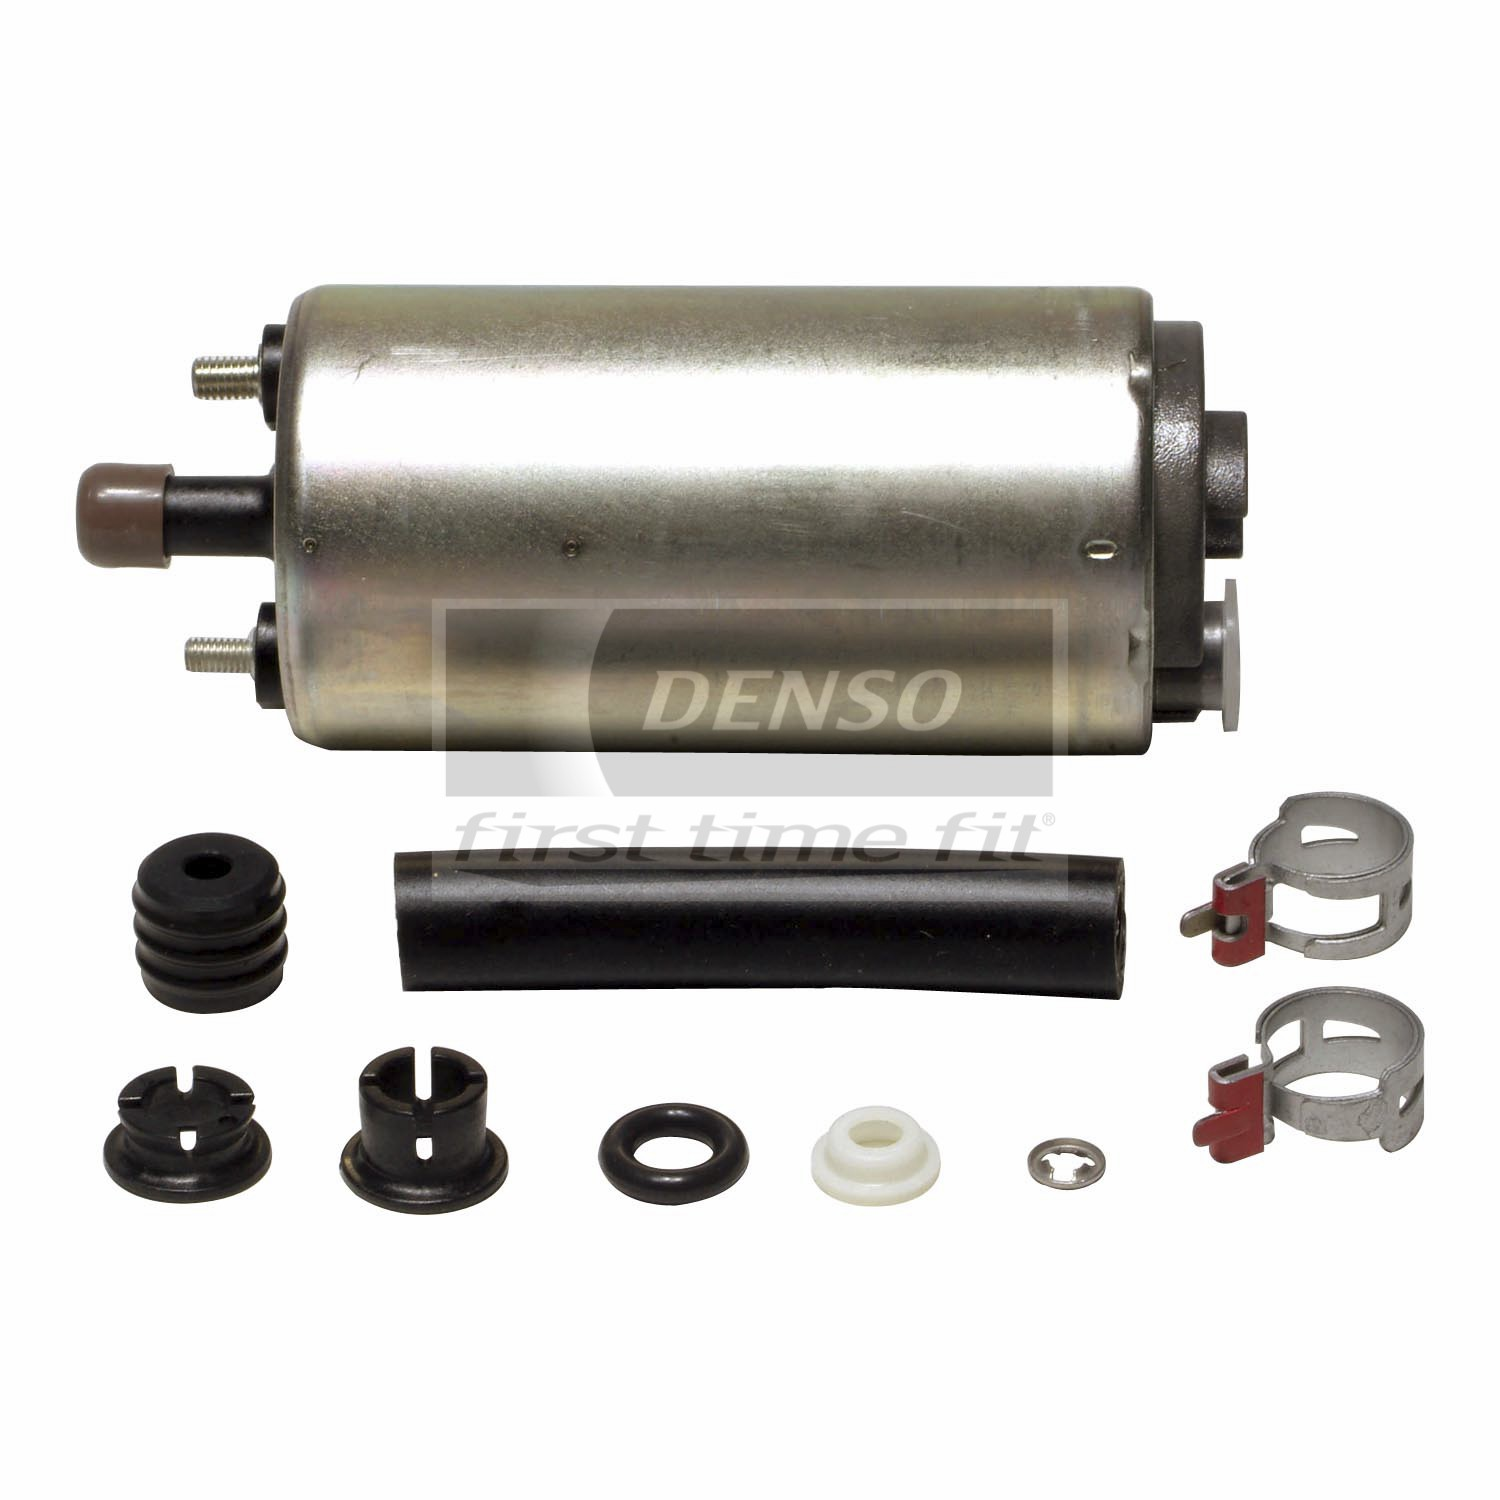 Denso 9510012 Electric Fuel Pump Fits 1983-1991 Toyota Camry